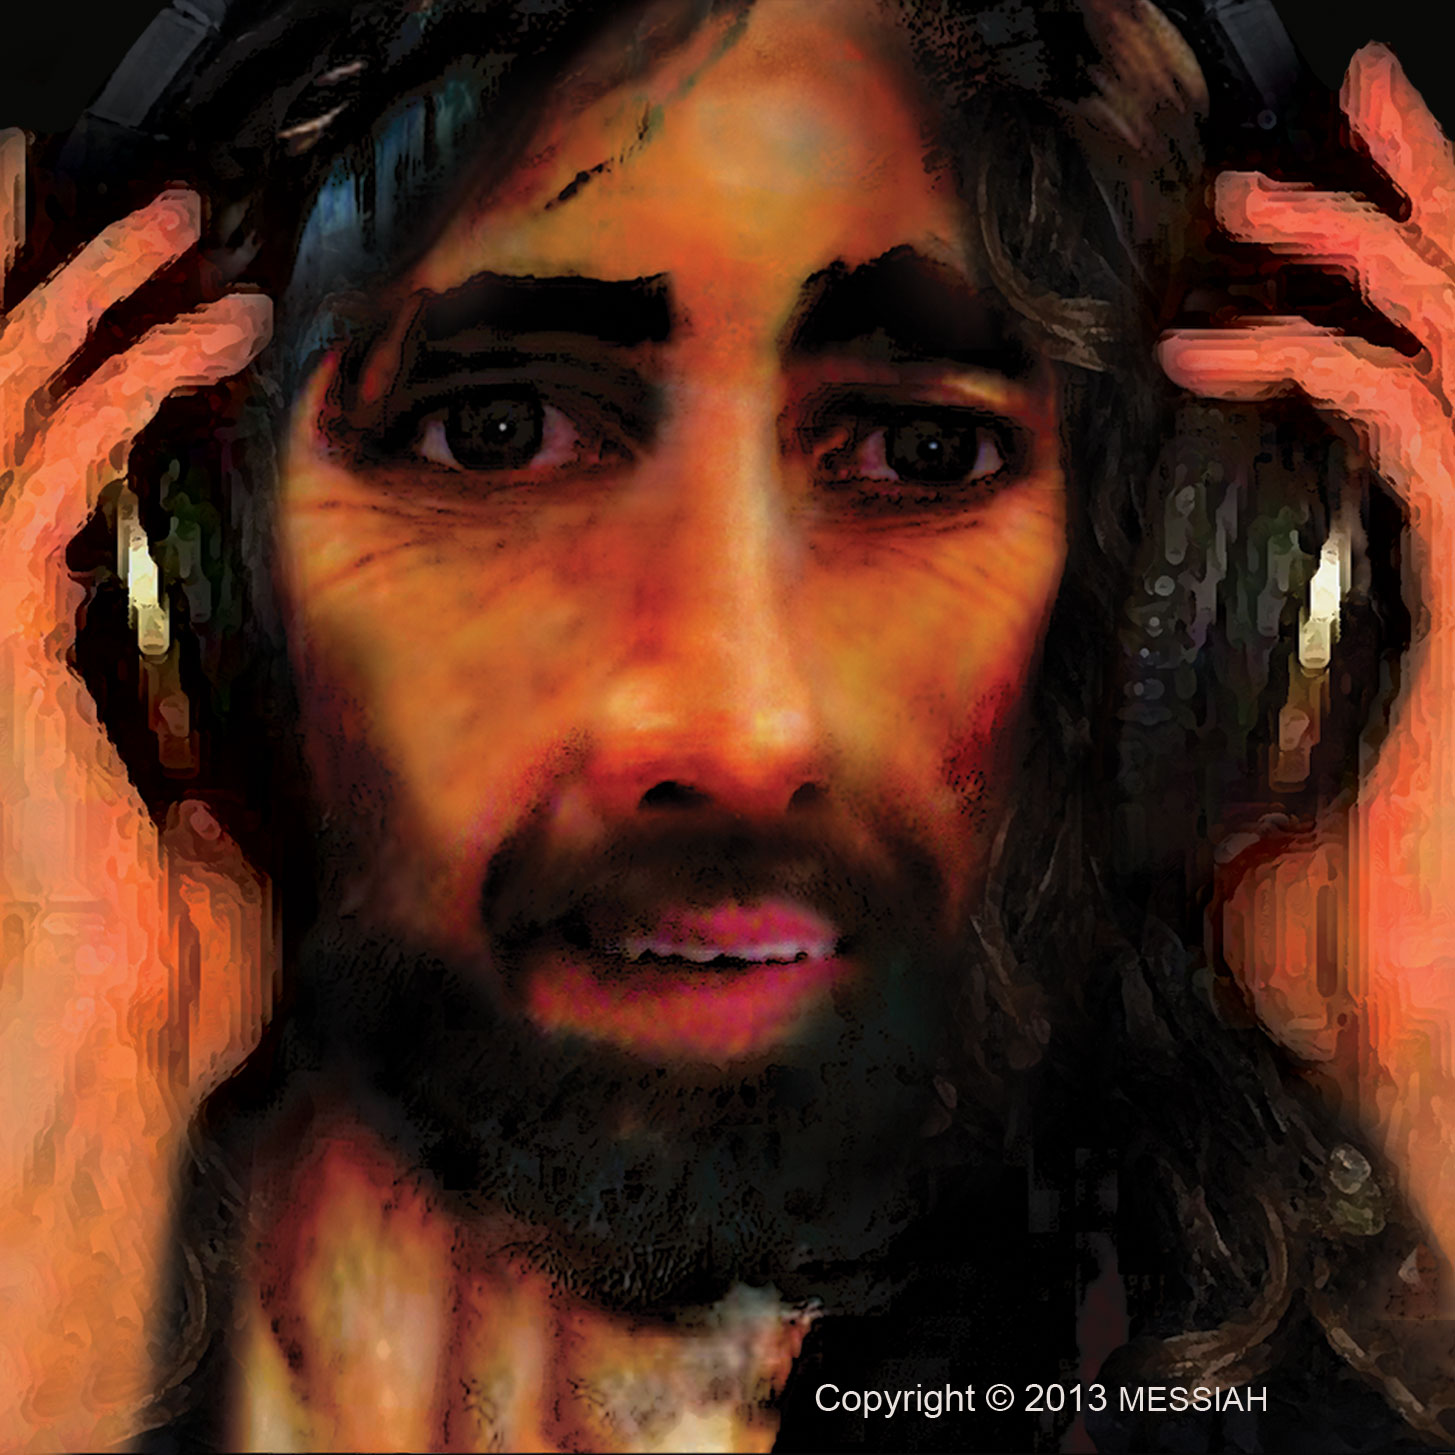 Jesus-with-Headphones-best